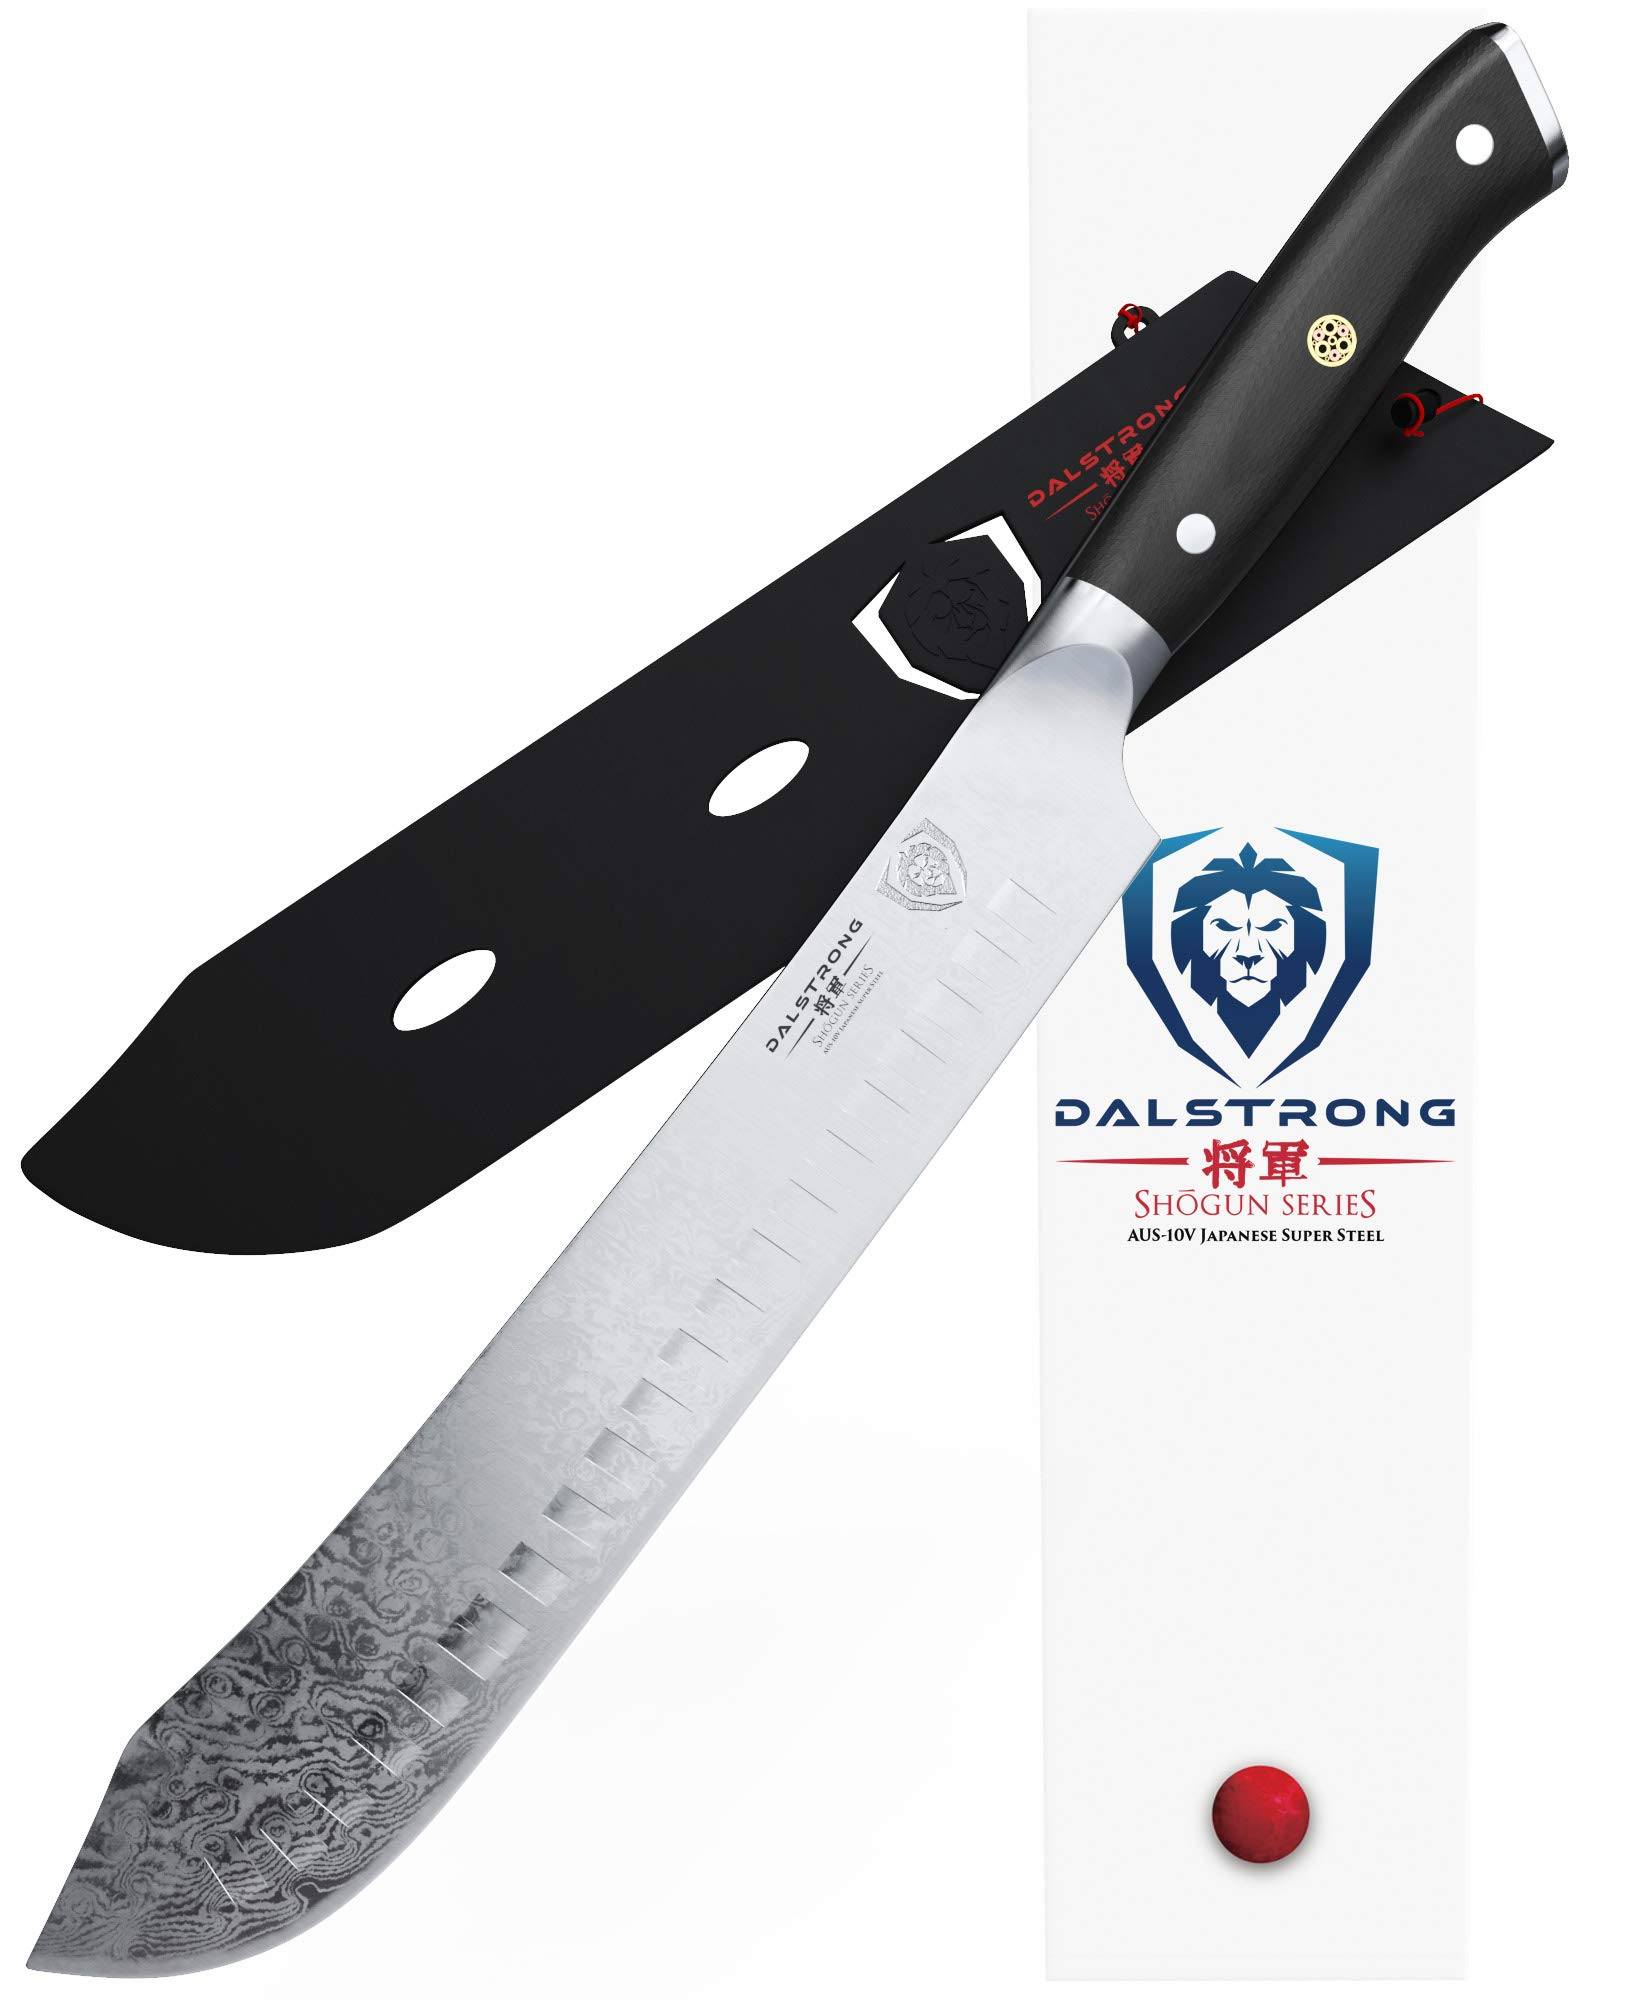 DALSTRONG Bull Nose Butcher Knife - Shogun Series - 10'' -Japanese AUS-10V Super Steel - Vacuum Heat Treatment - with Sheath